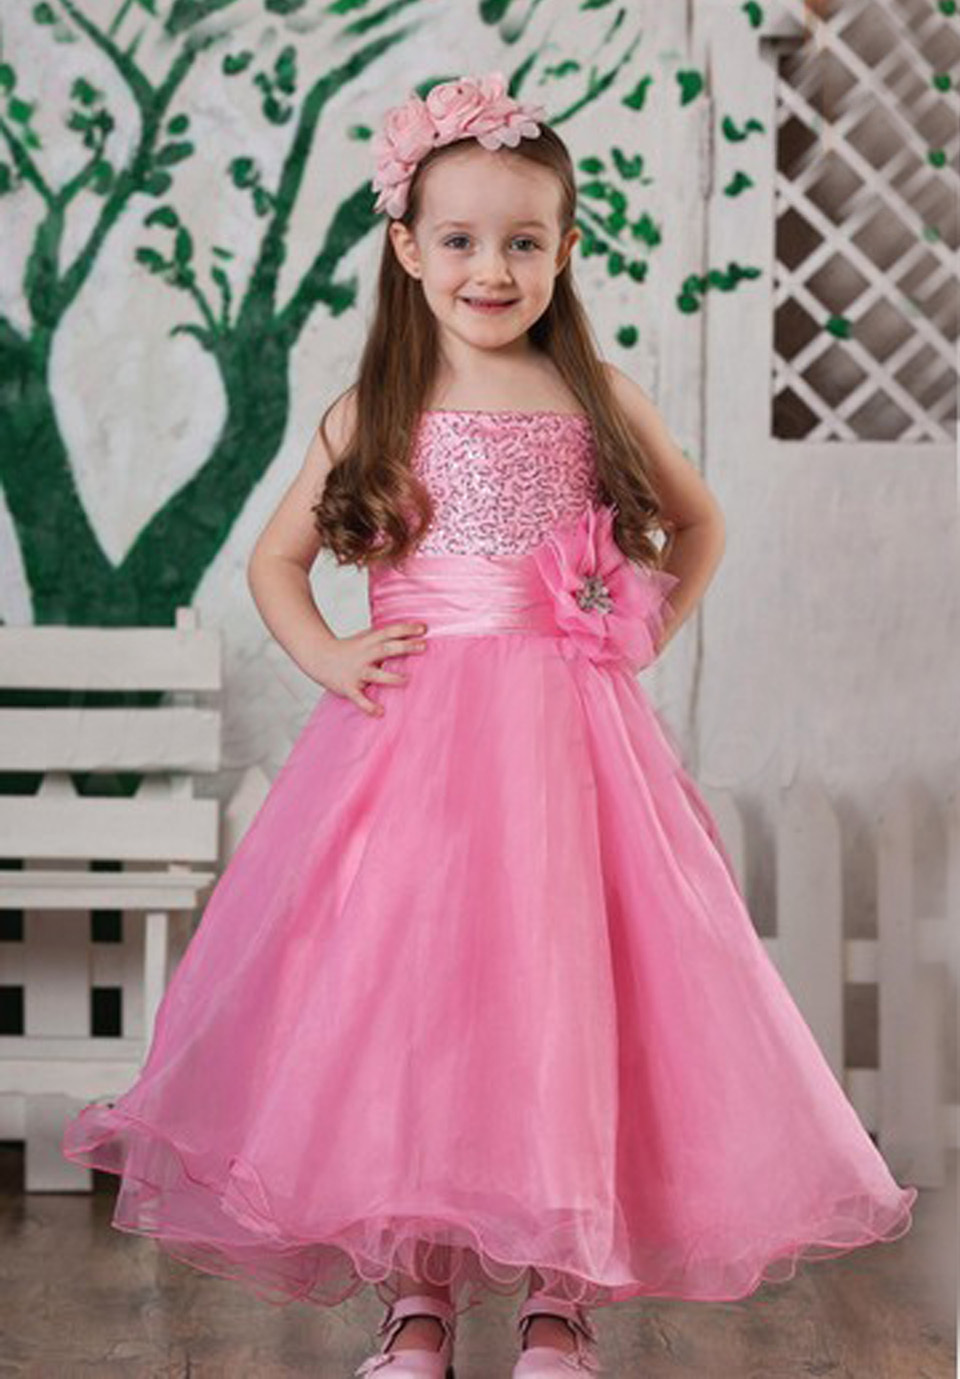 Formal Beading Ruffles Flower Girl Dress Backless Back Zipper Ball Gowns Vestidos Glitz Spaghetti Straps Pink Quinceanera Gowns<br><br>Aliexpress